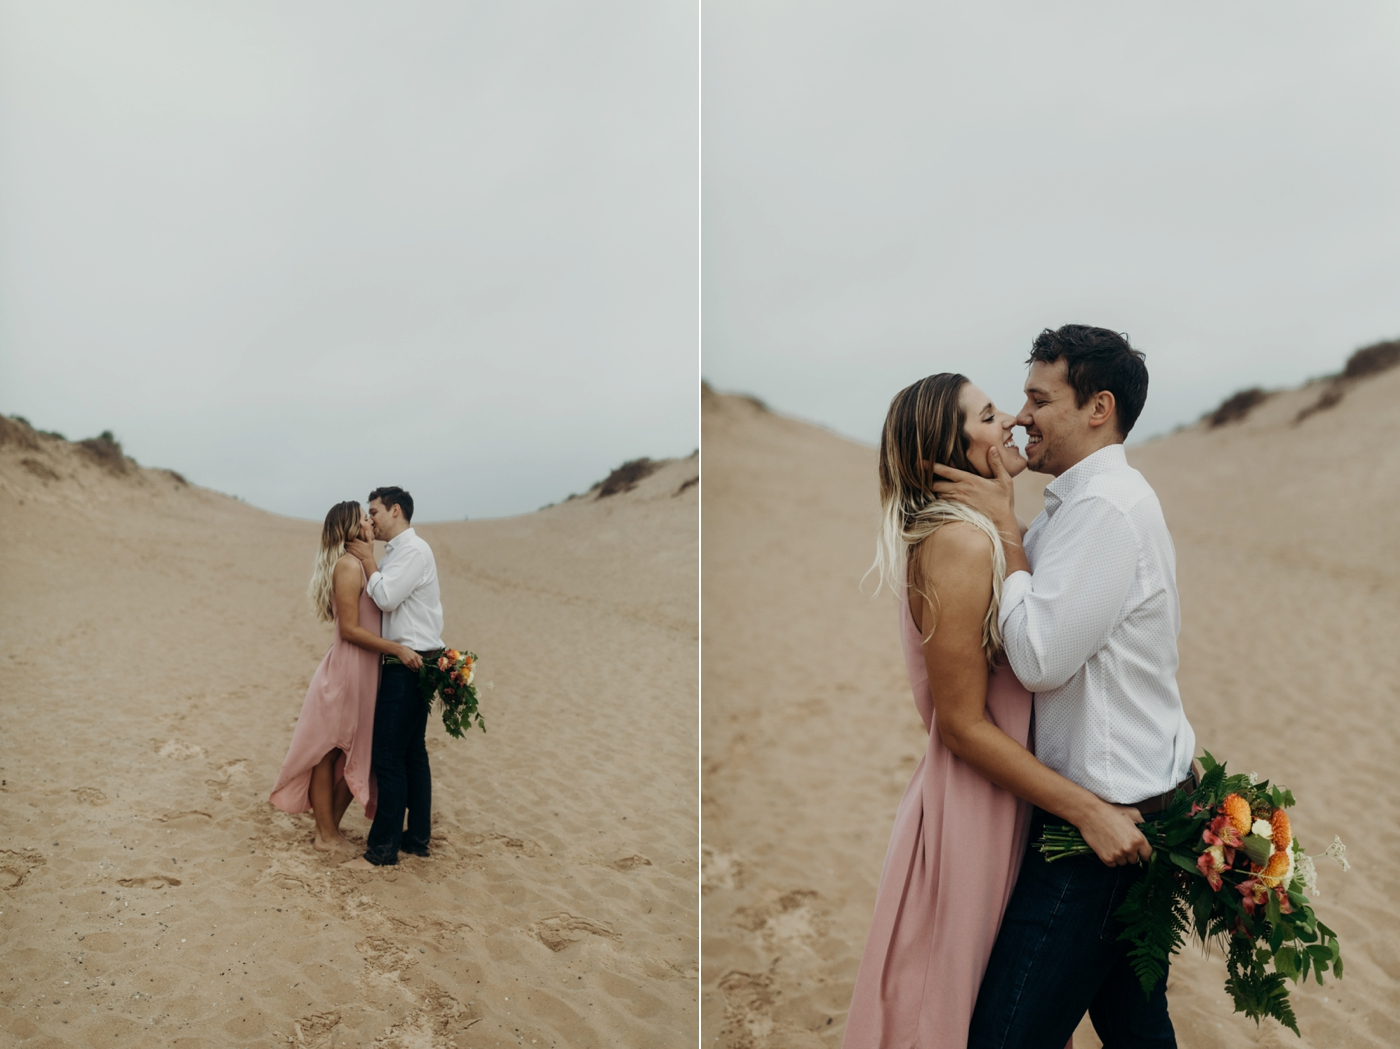 Sleeping_Bear_Dunes_Couples_Adventure_Session_Adventure_Wedding_Photographer_Hiking_with_Heels_Brett+Emily-40.jpg